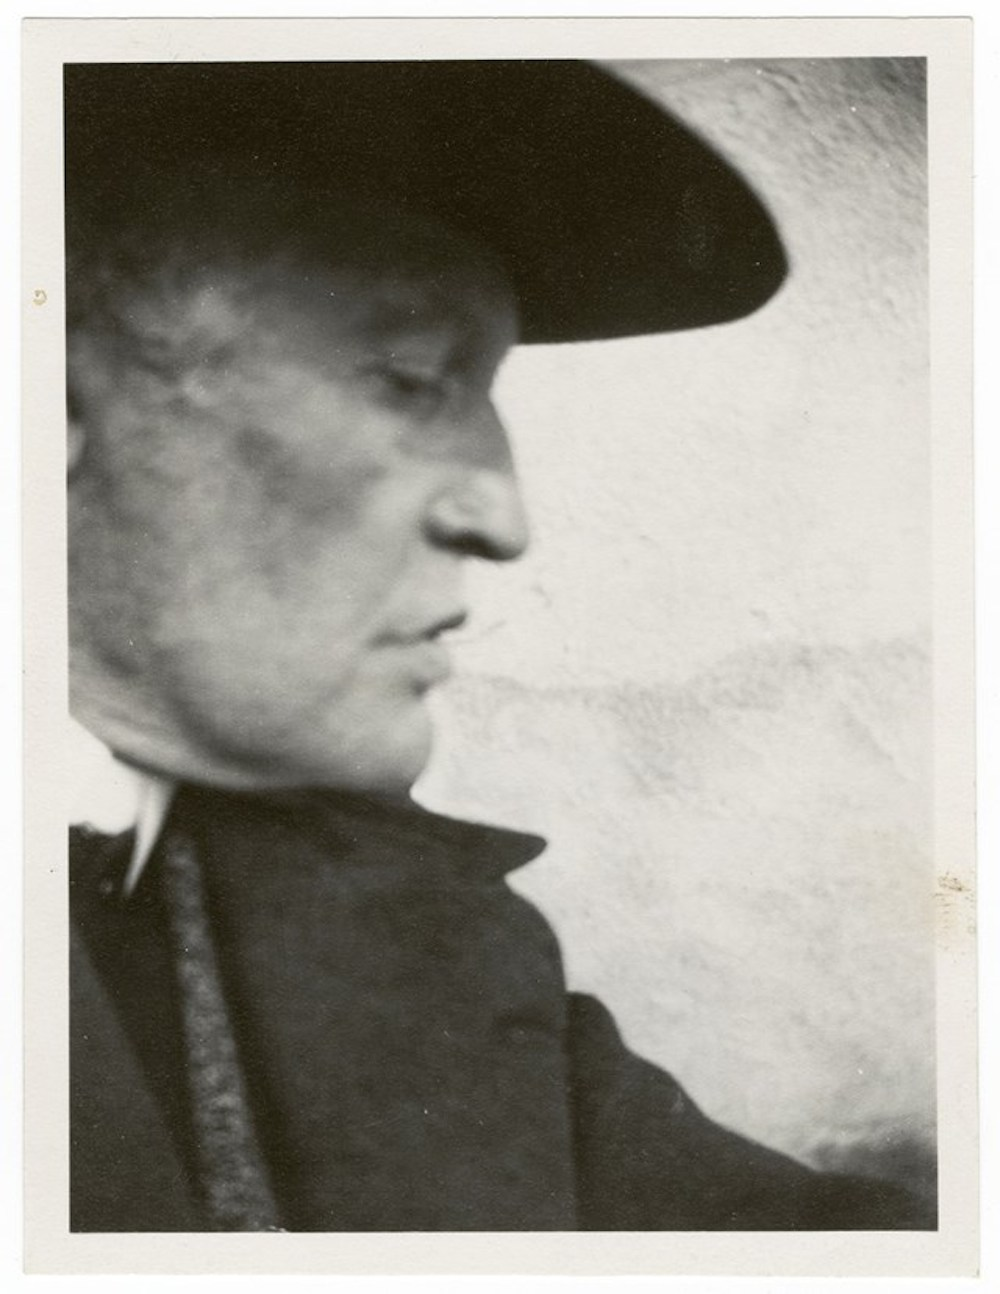 Edvard Munch, Self-Portrait in a Hat in Pro le Facing Right, 1930